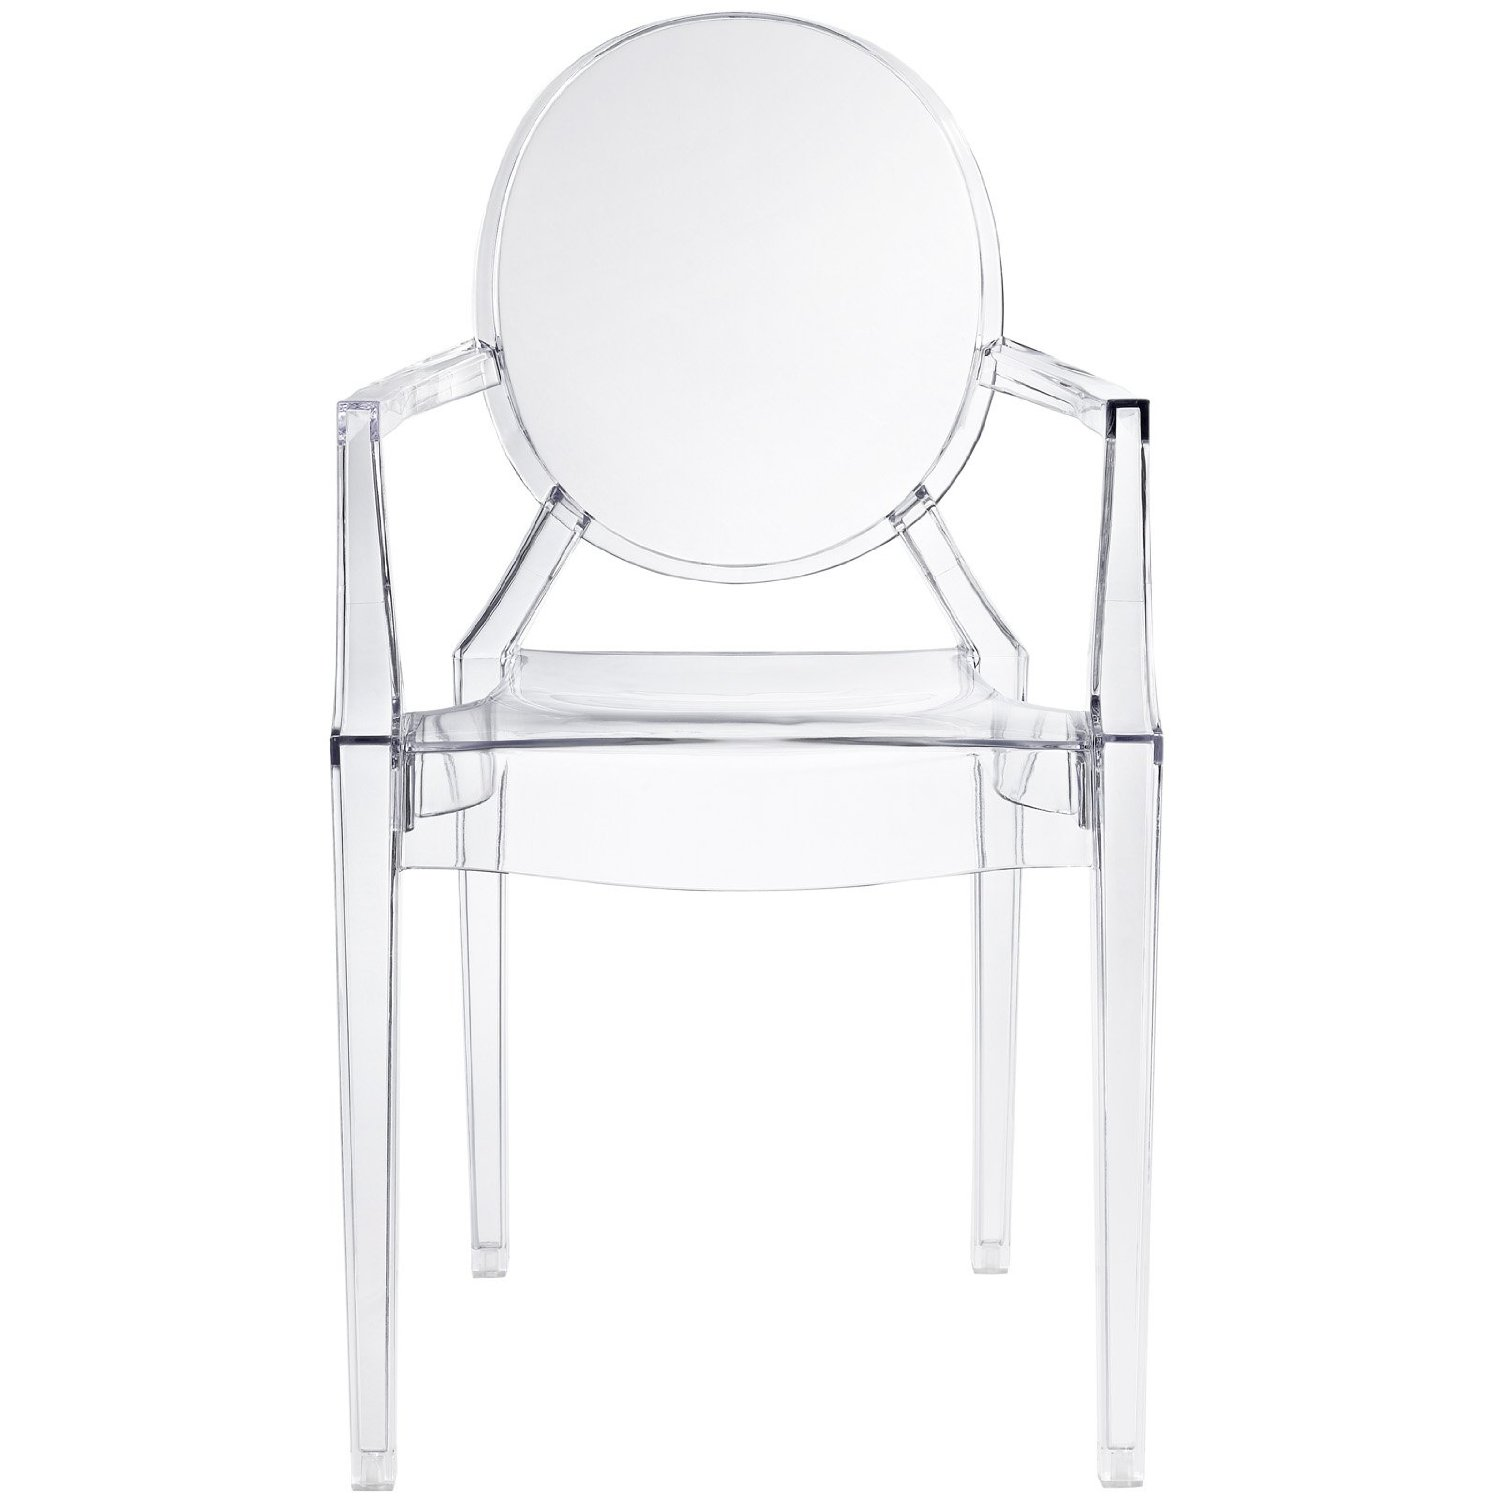 Trending ghost chairs boston design guide for Chaise ghost kartell